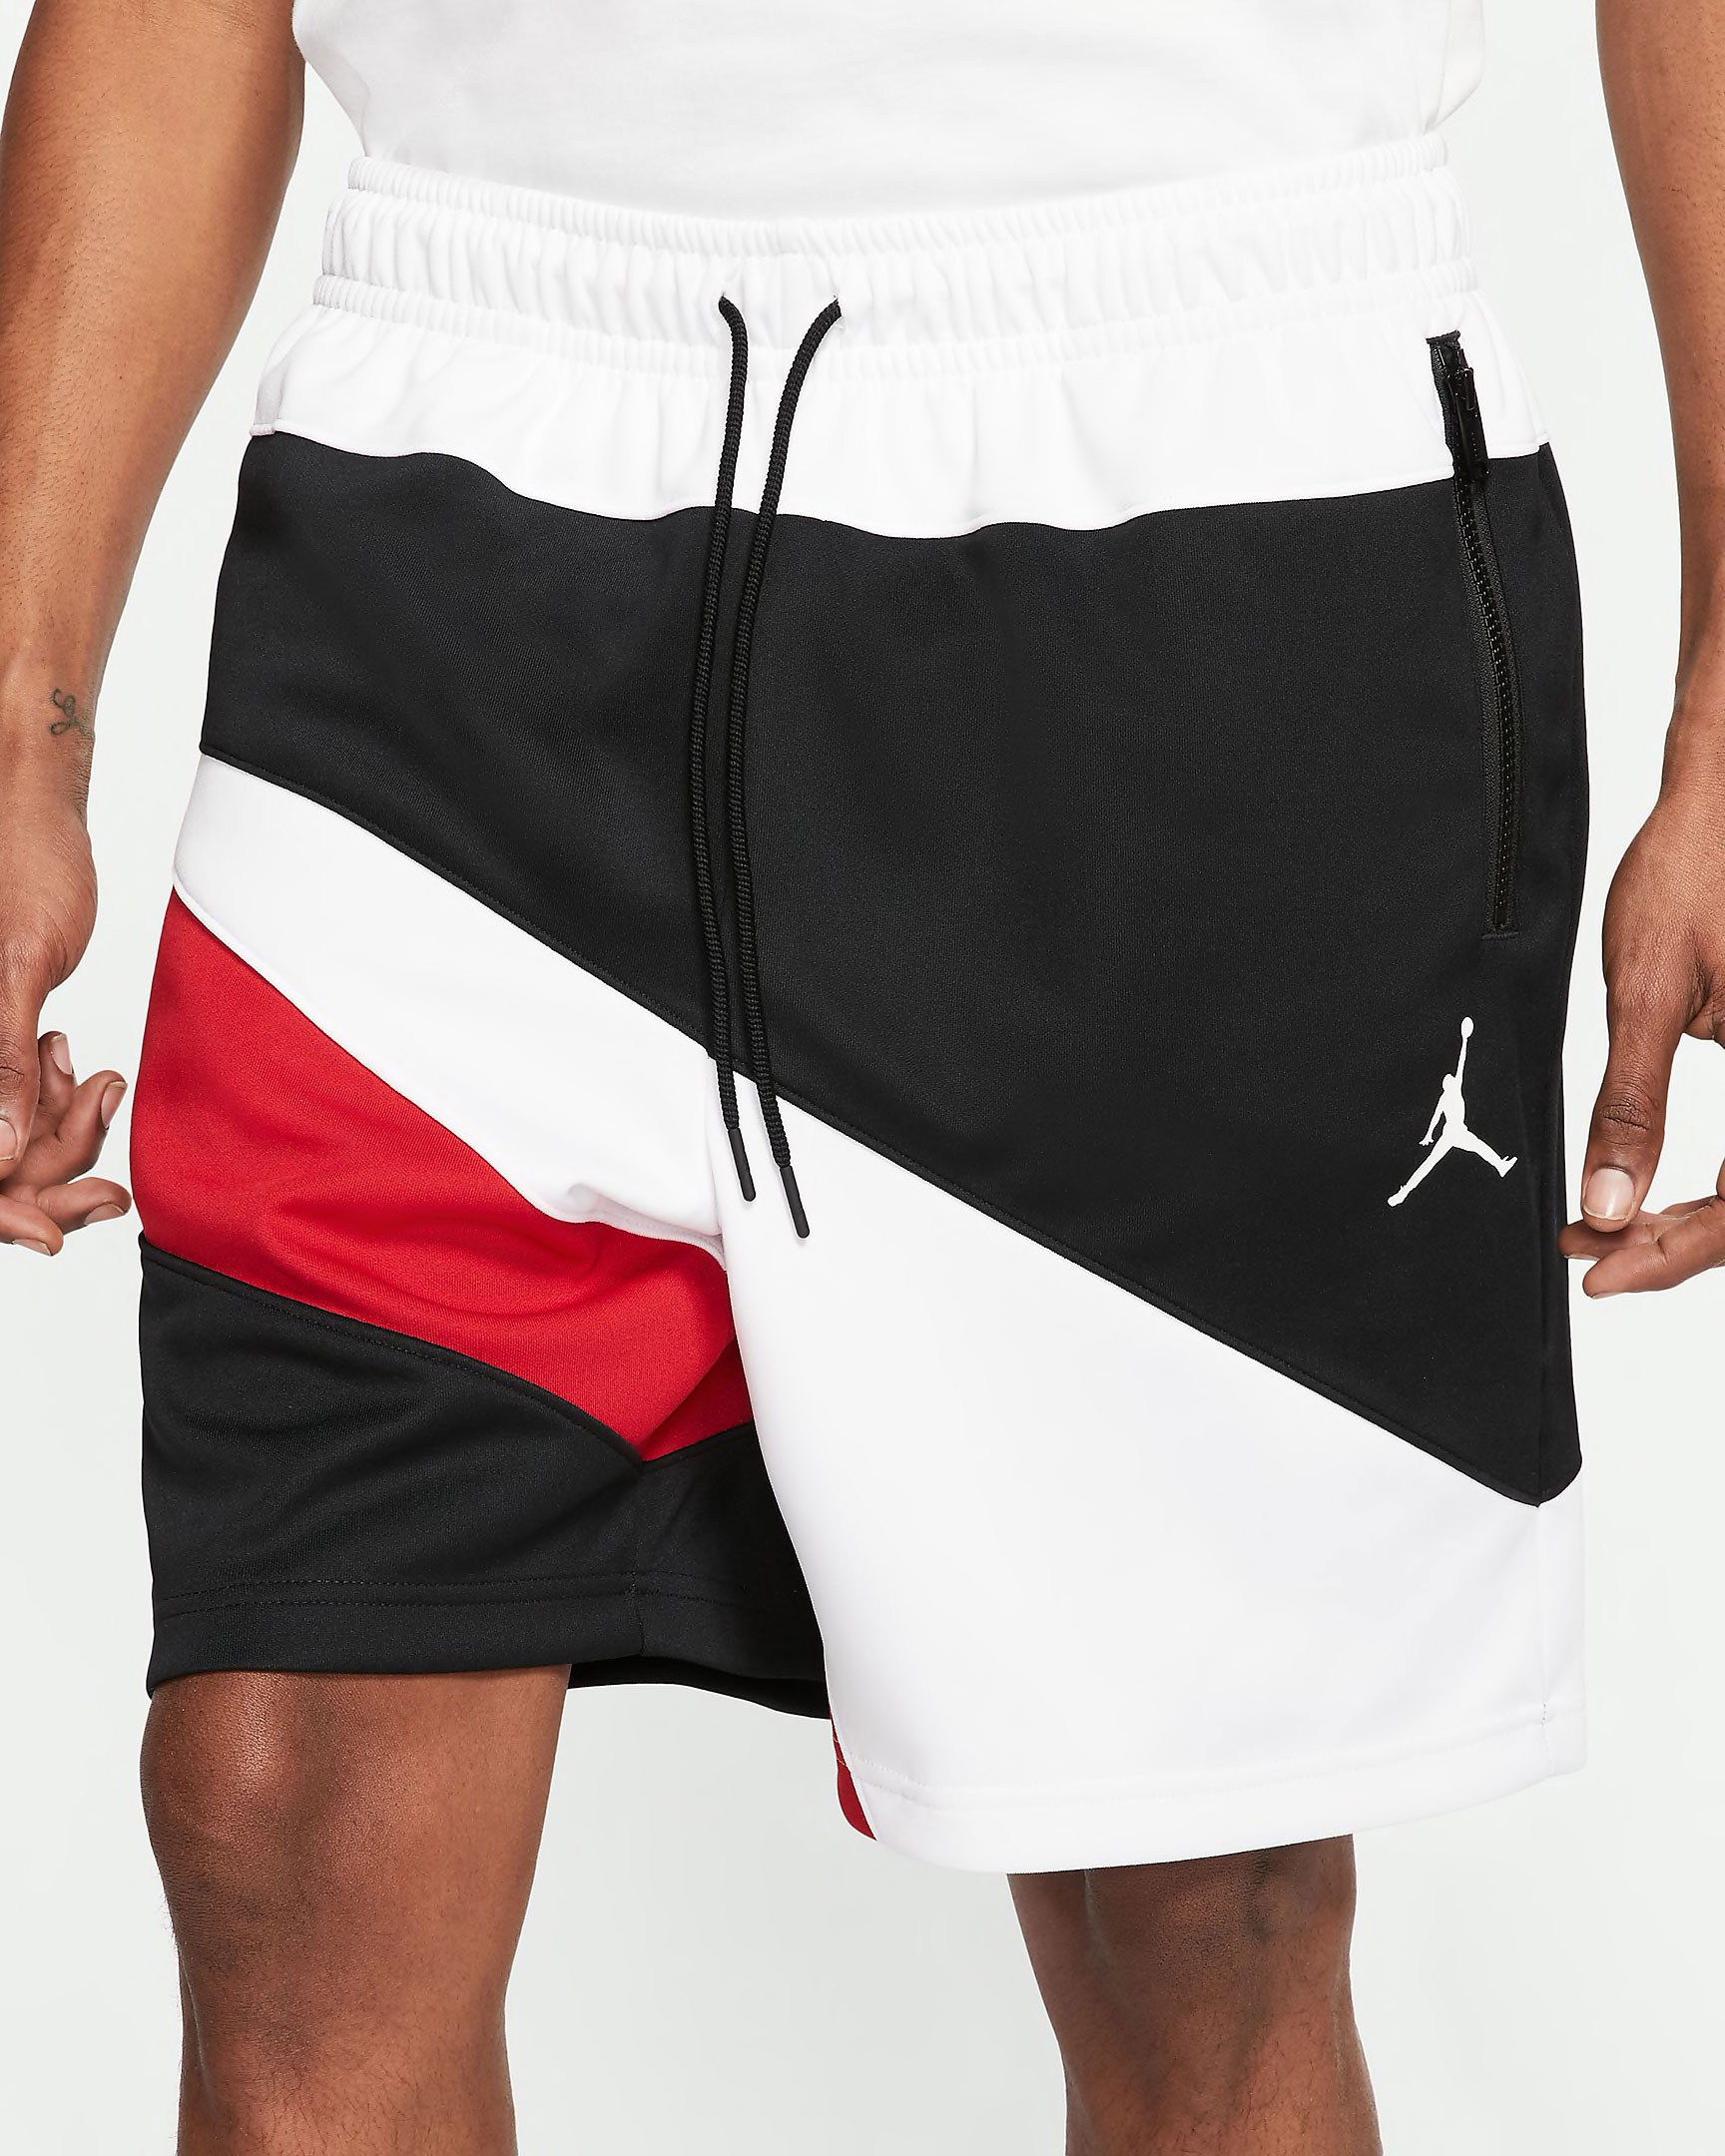 jordan-wave-shorts-black-white-red